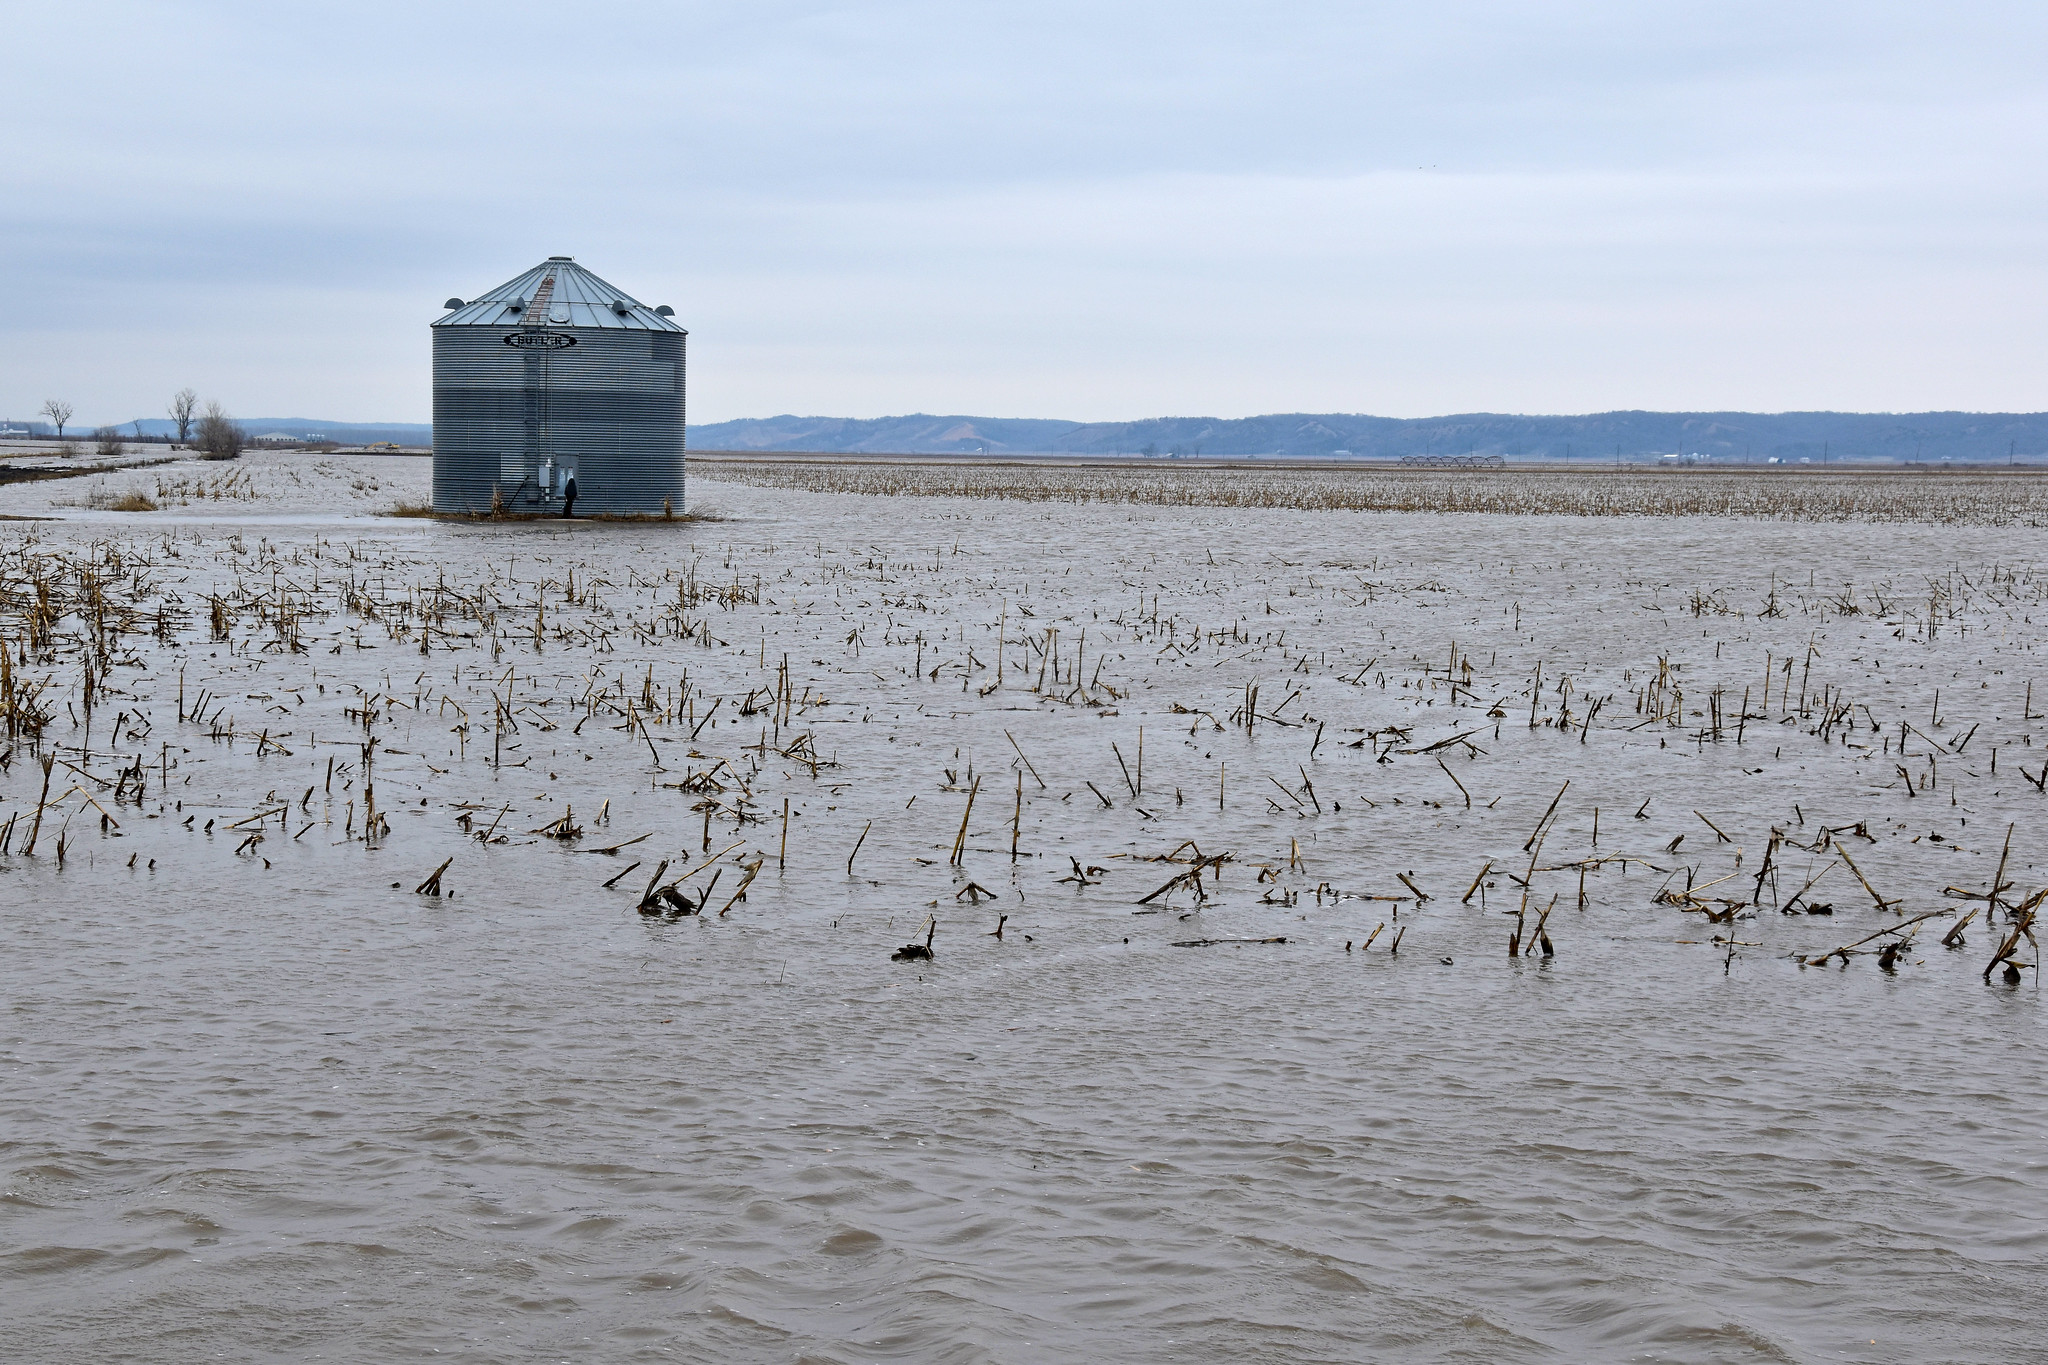 Last year's historic floods ruined 20 million acres of farmland